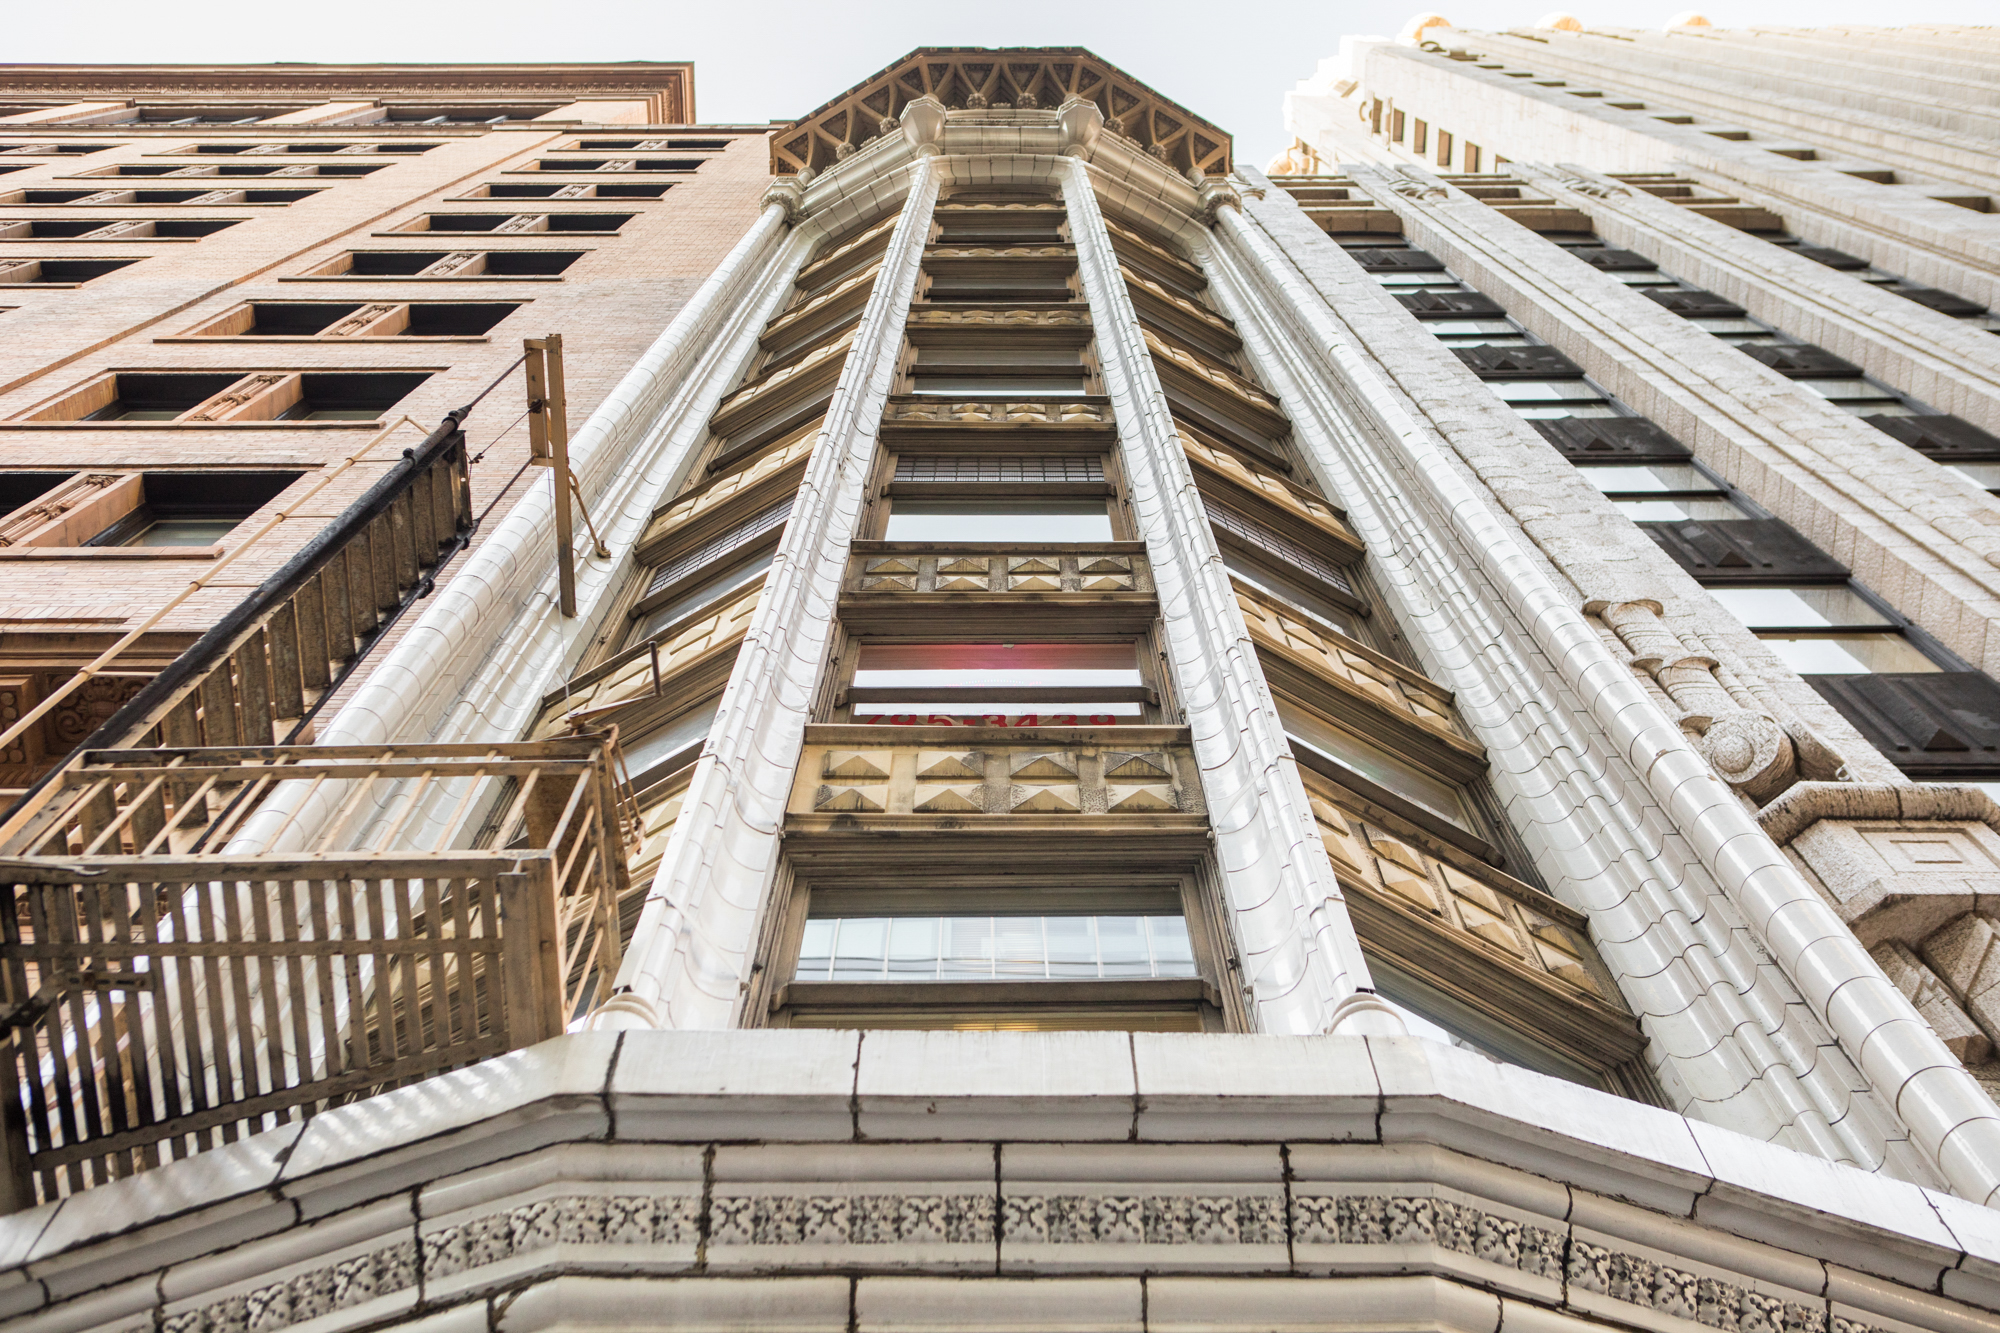 The exterior of the Heineman Building in San Francisco. The facade is white with ornate gold design.